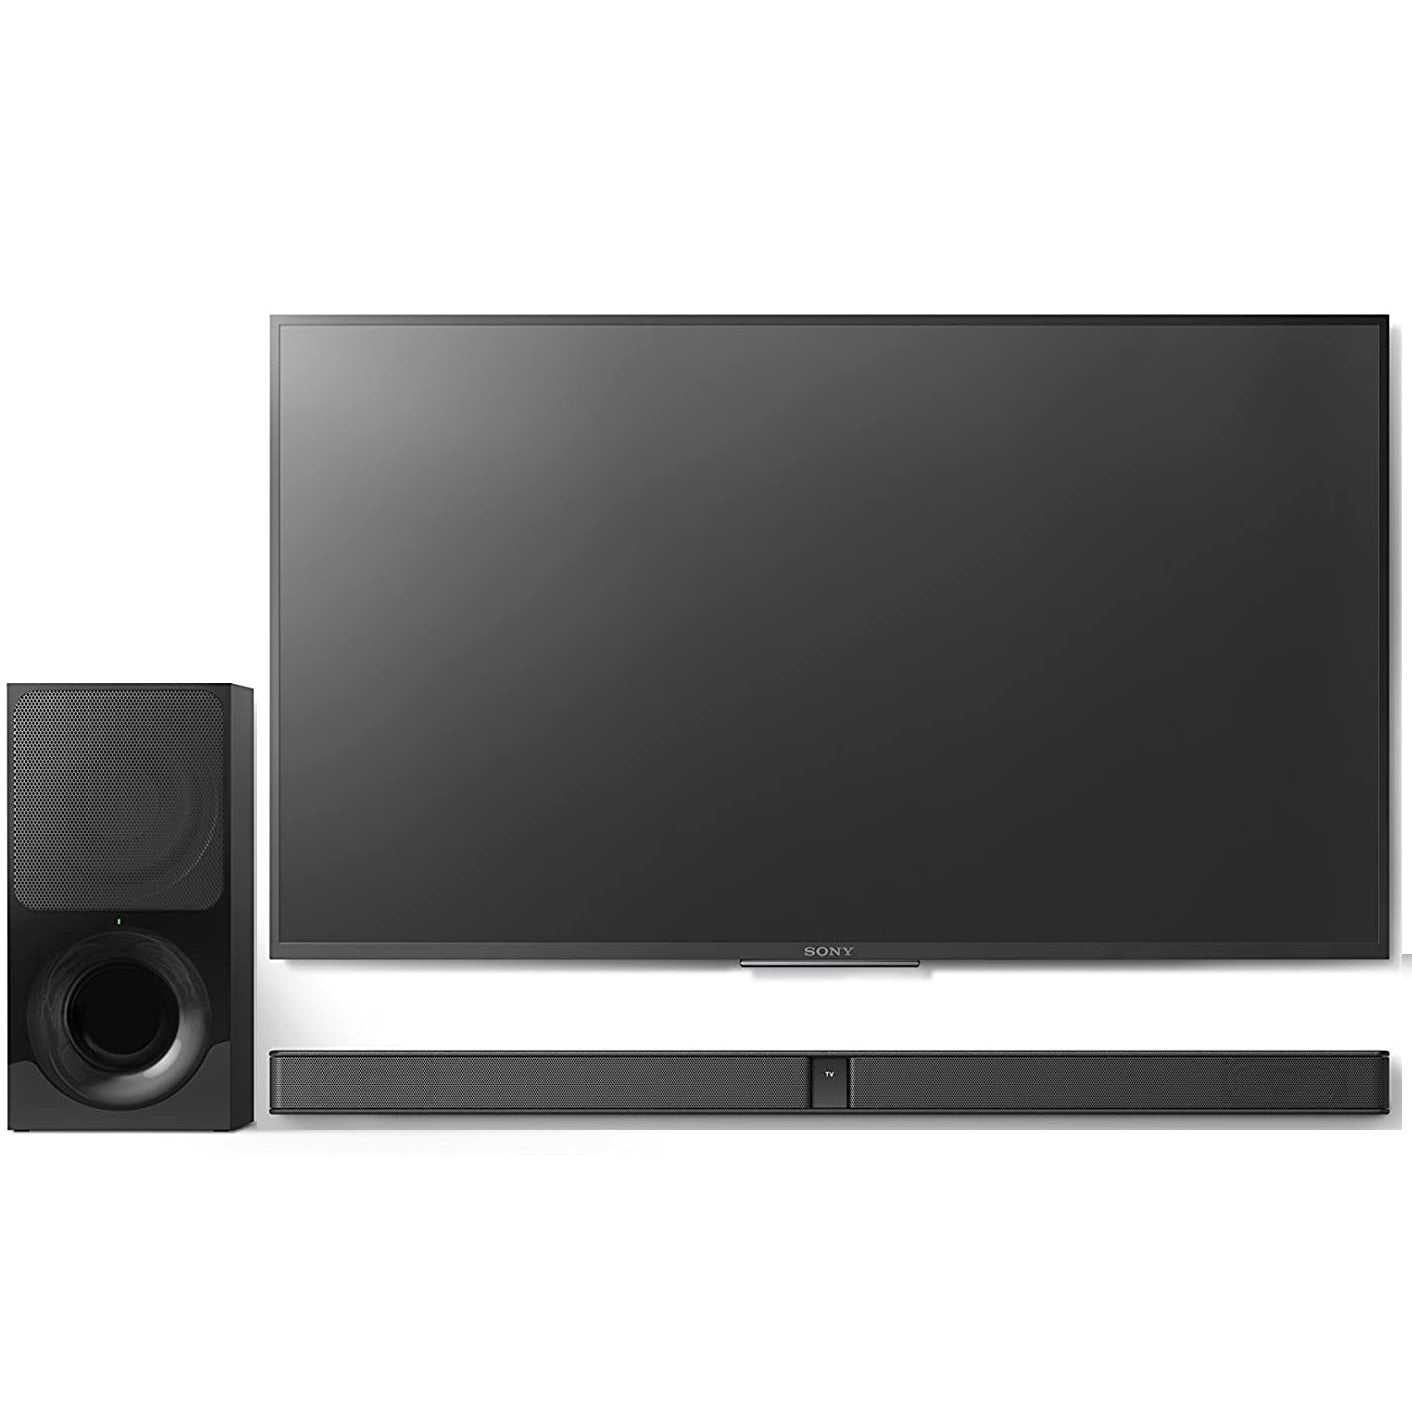 Sony Ultra-slim 300W Sound Bar (HT-CT290)